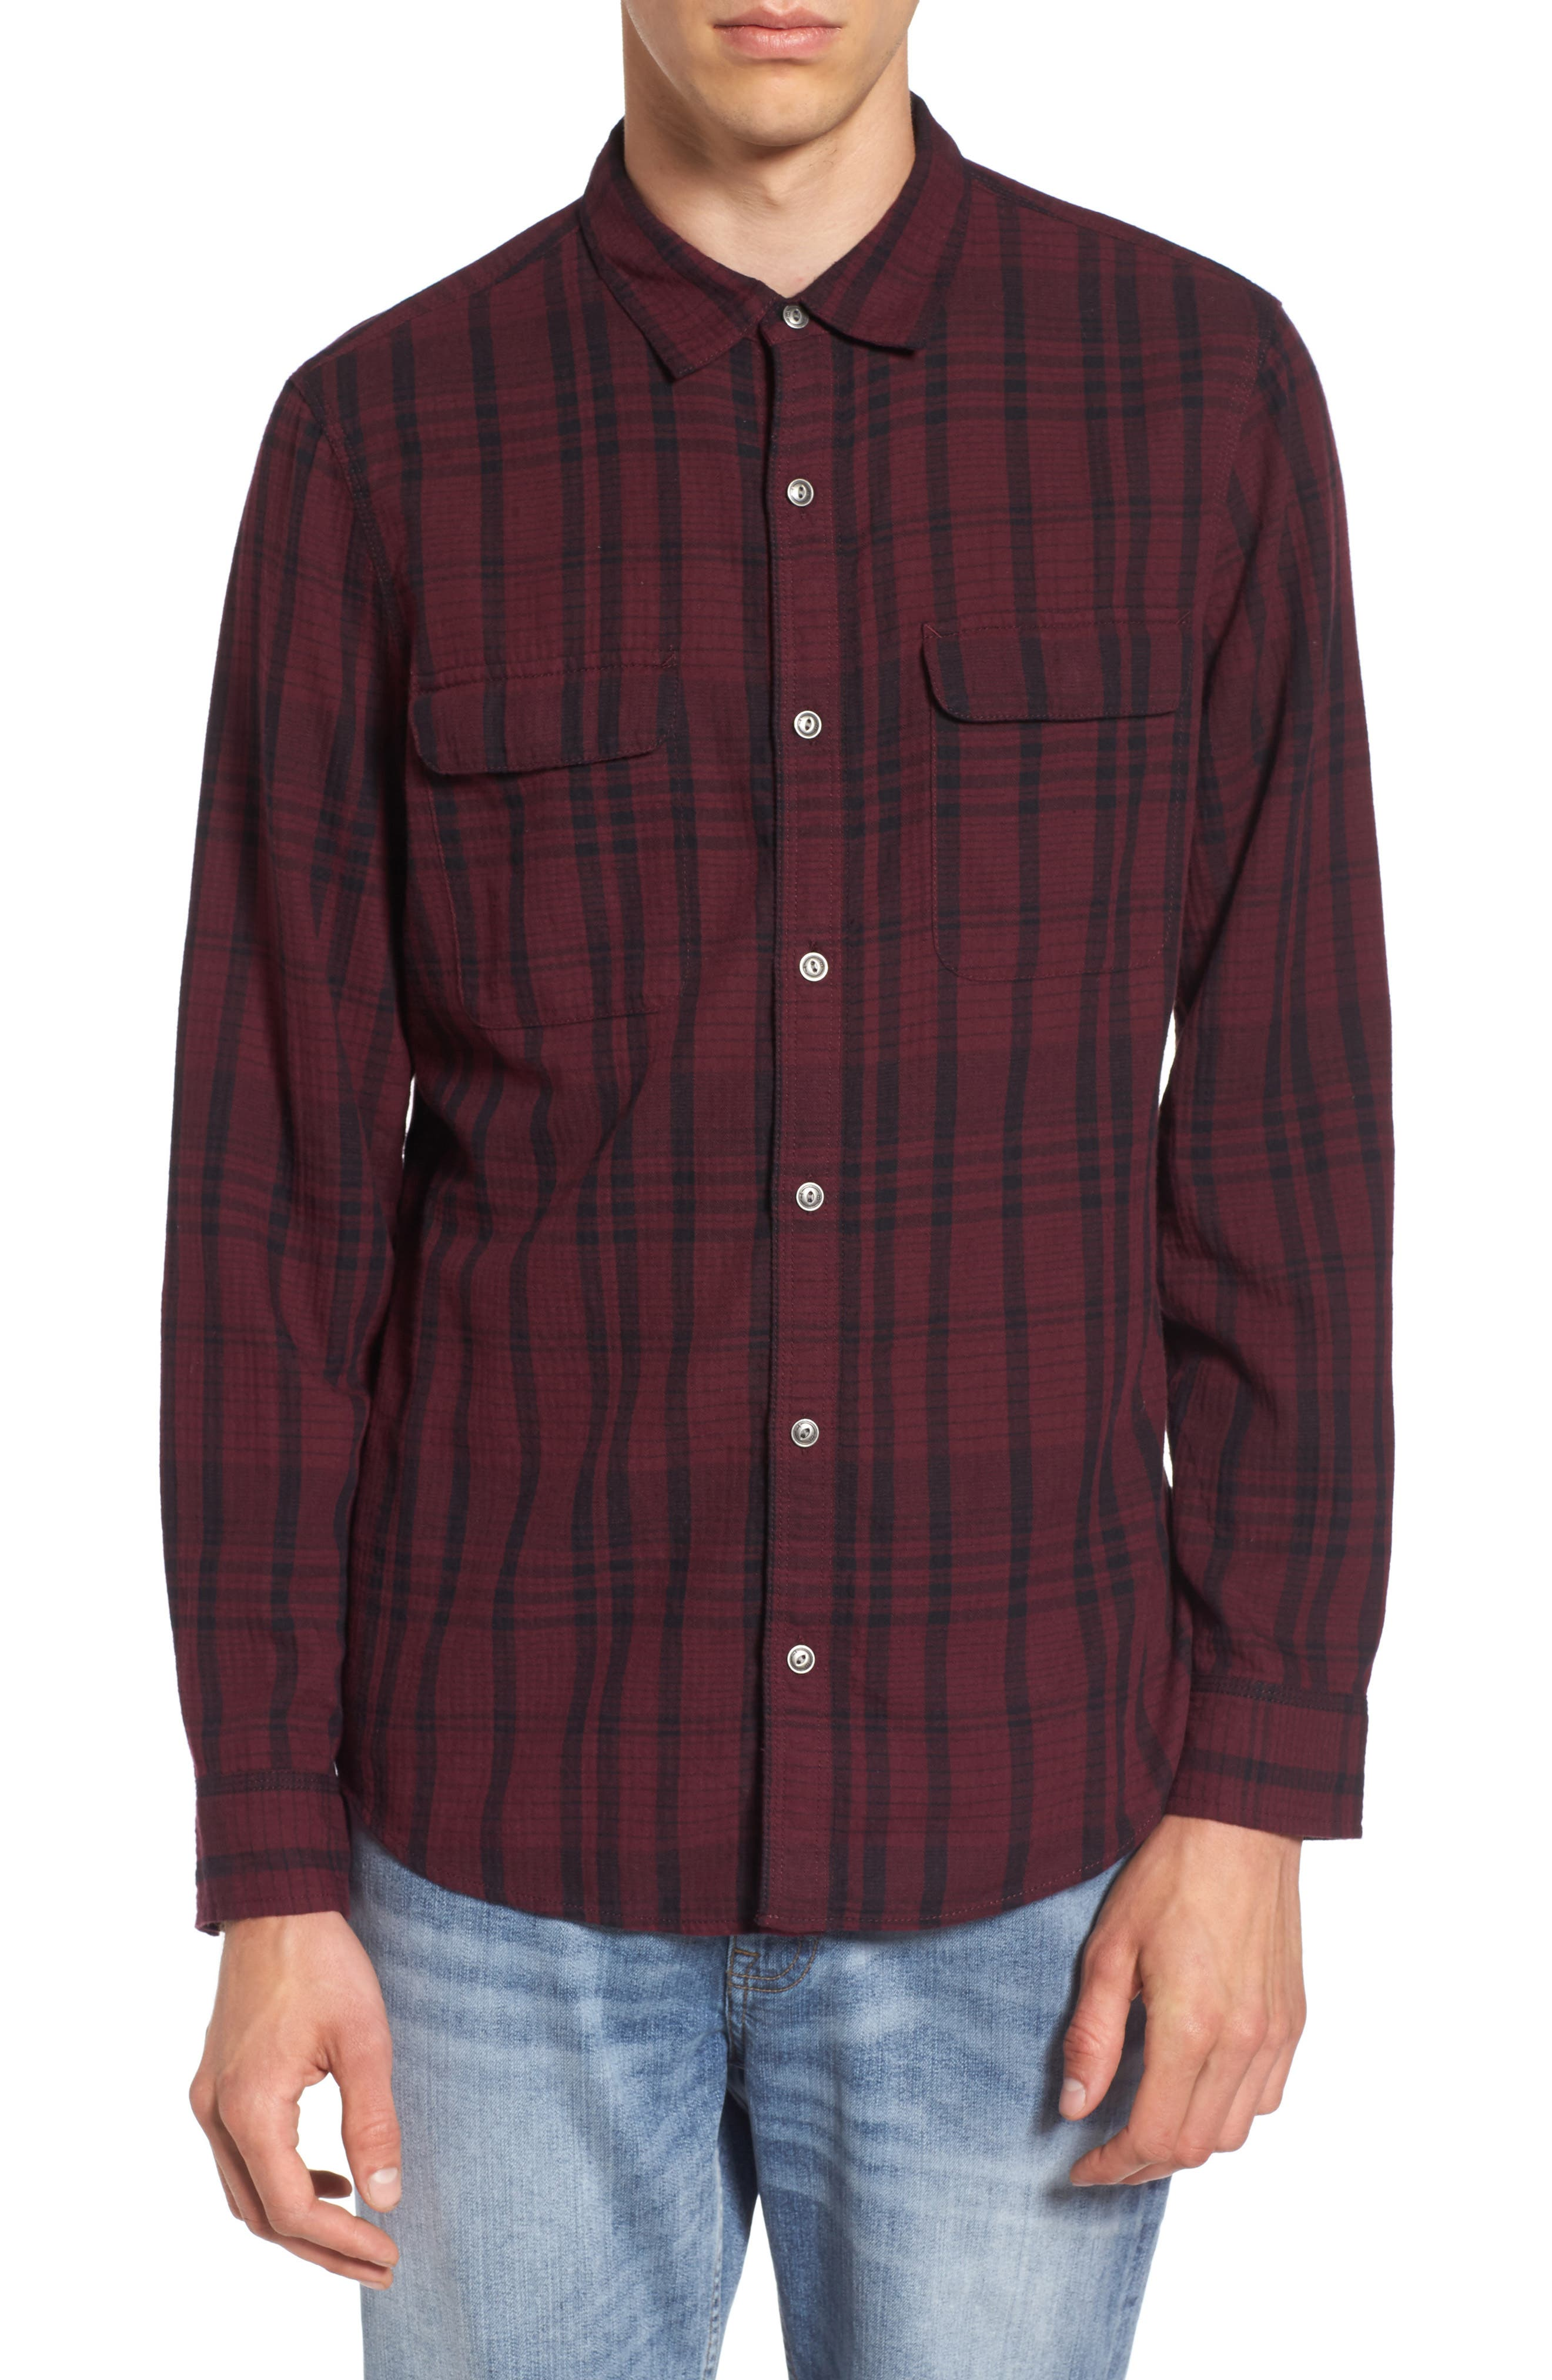 Treasure & Bond Hooper Plaid Sport Shirt